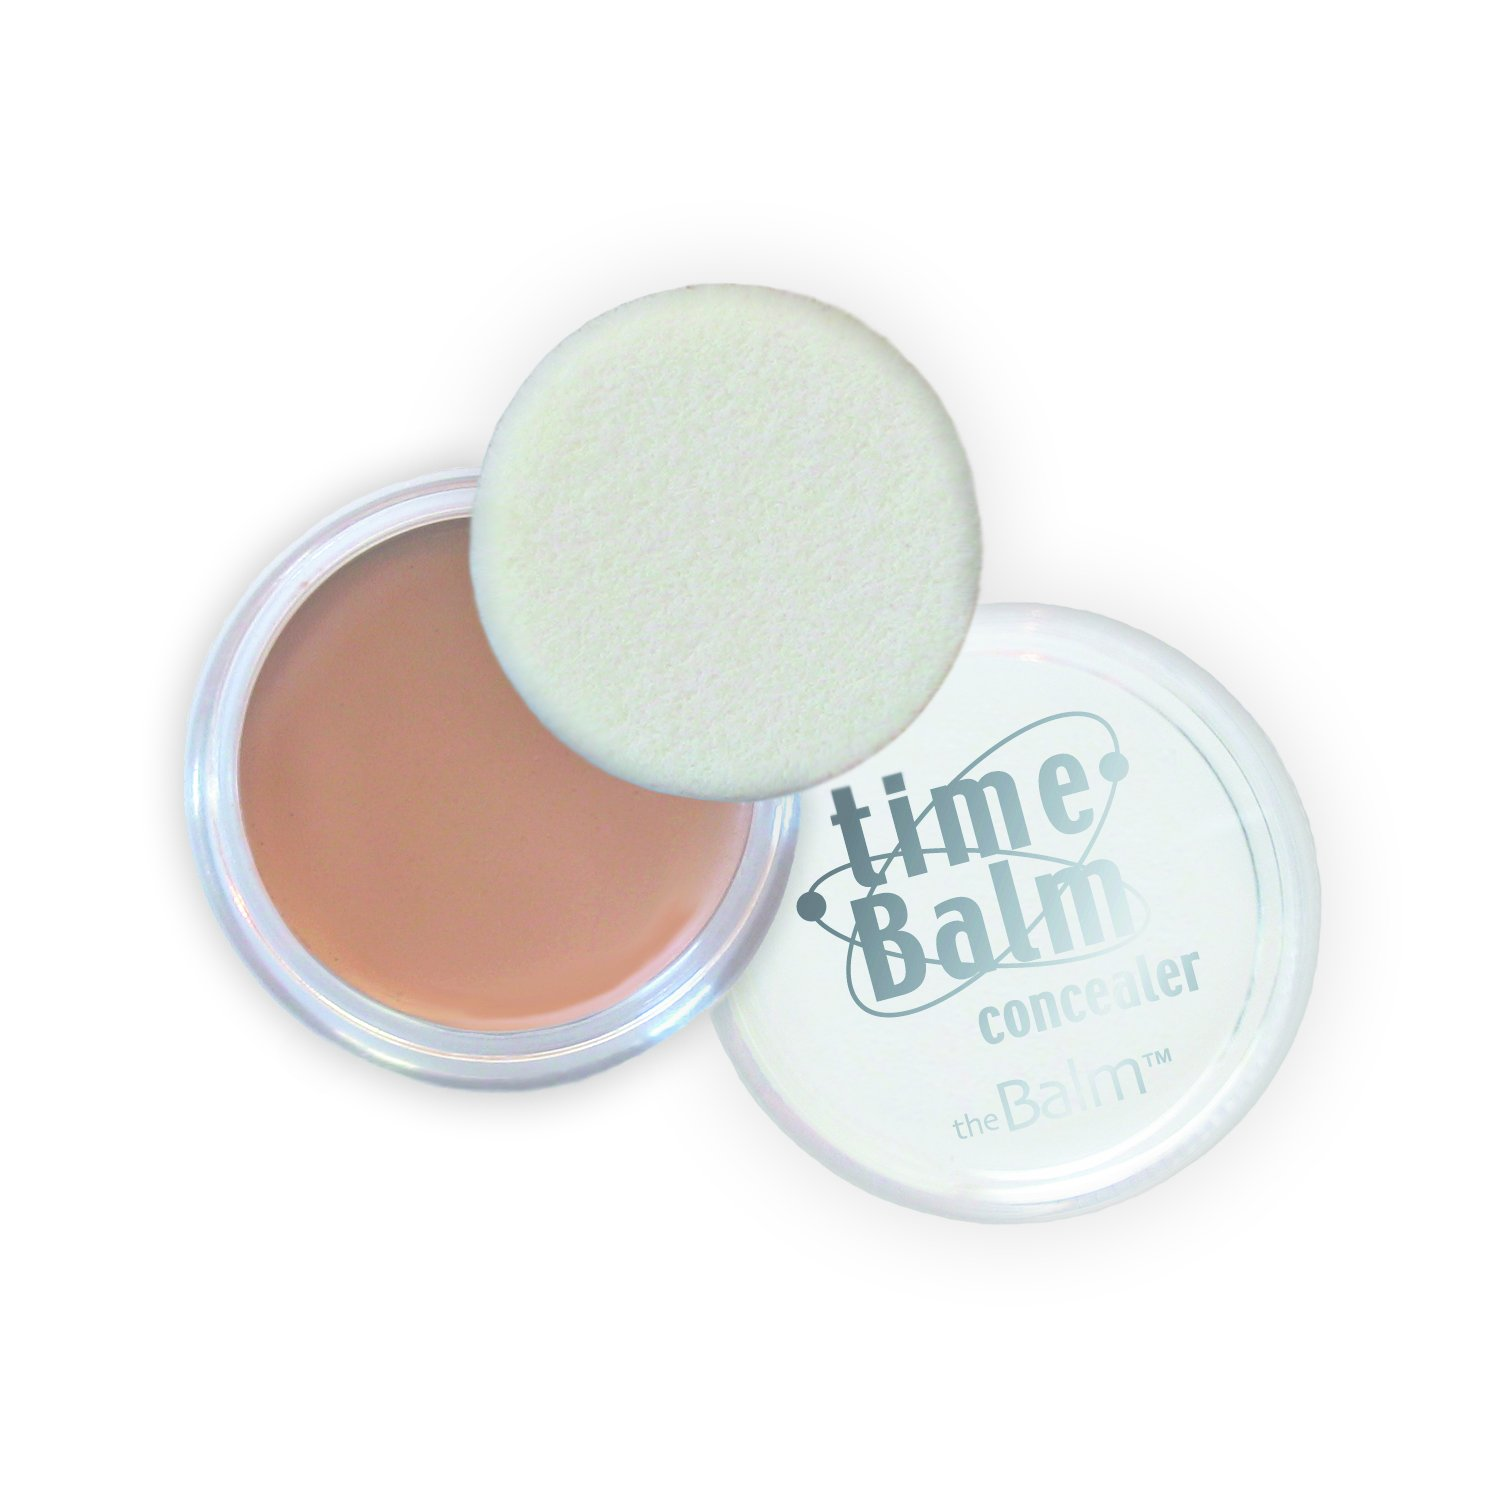 theBalm TimeBalm Concealer, Mid-Medium, 0.80 Oz The Balm 120